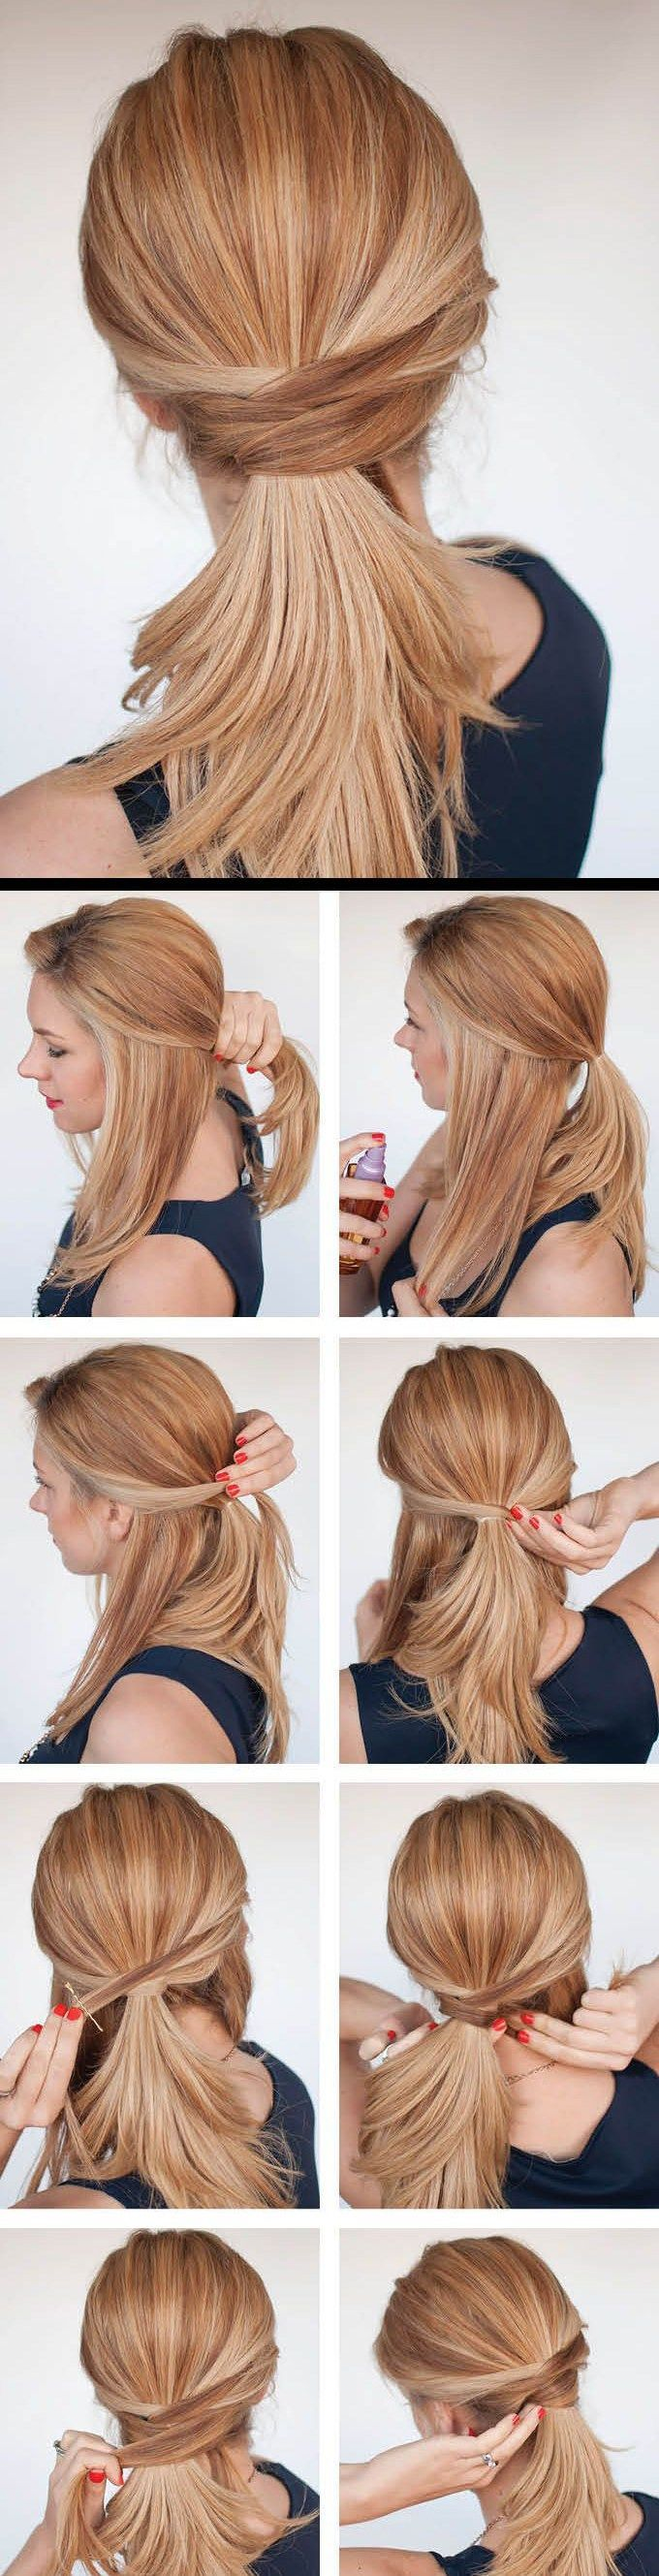 low cross ponytail for interview ready hair